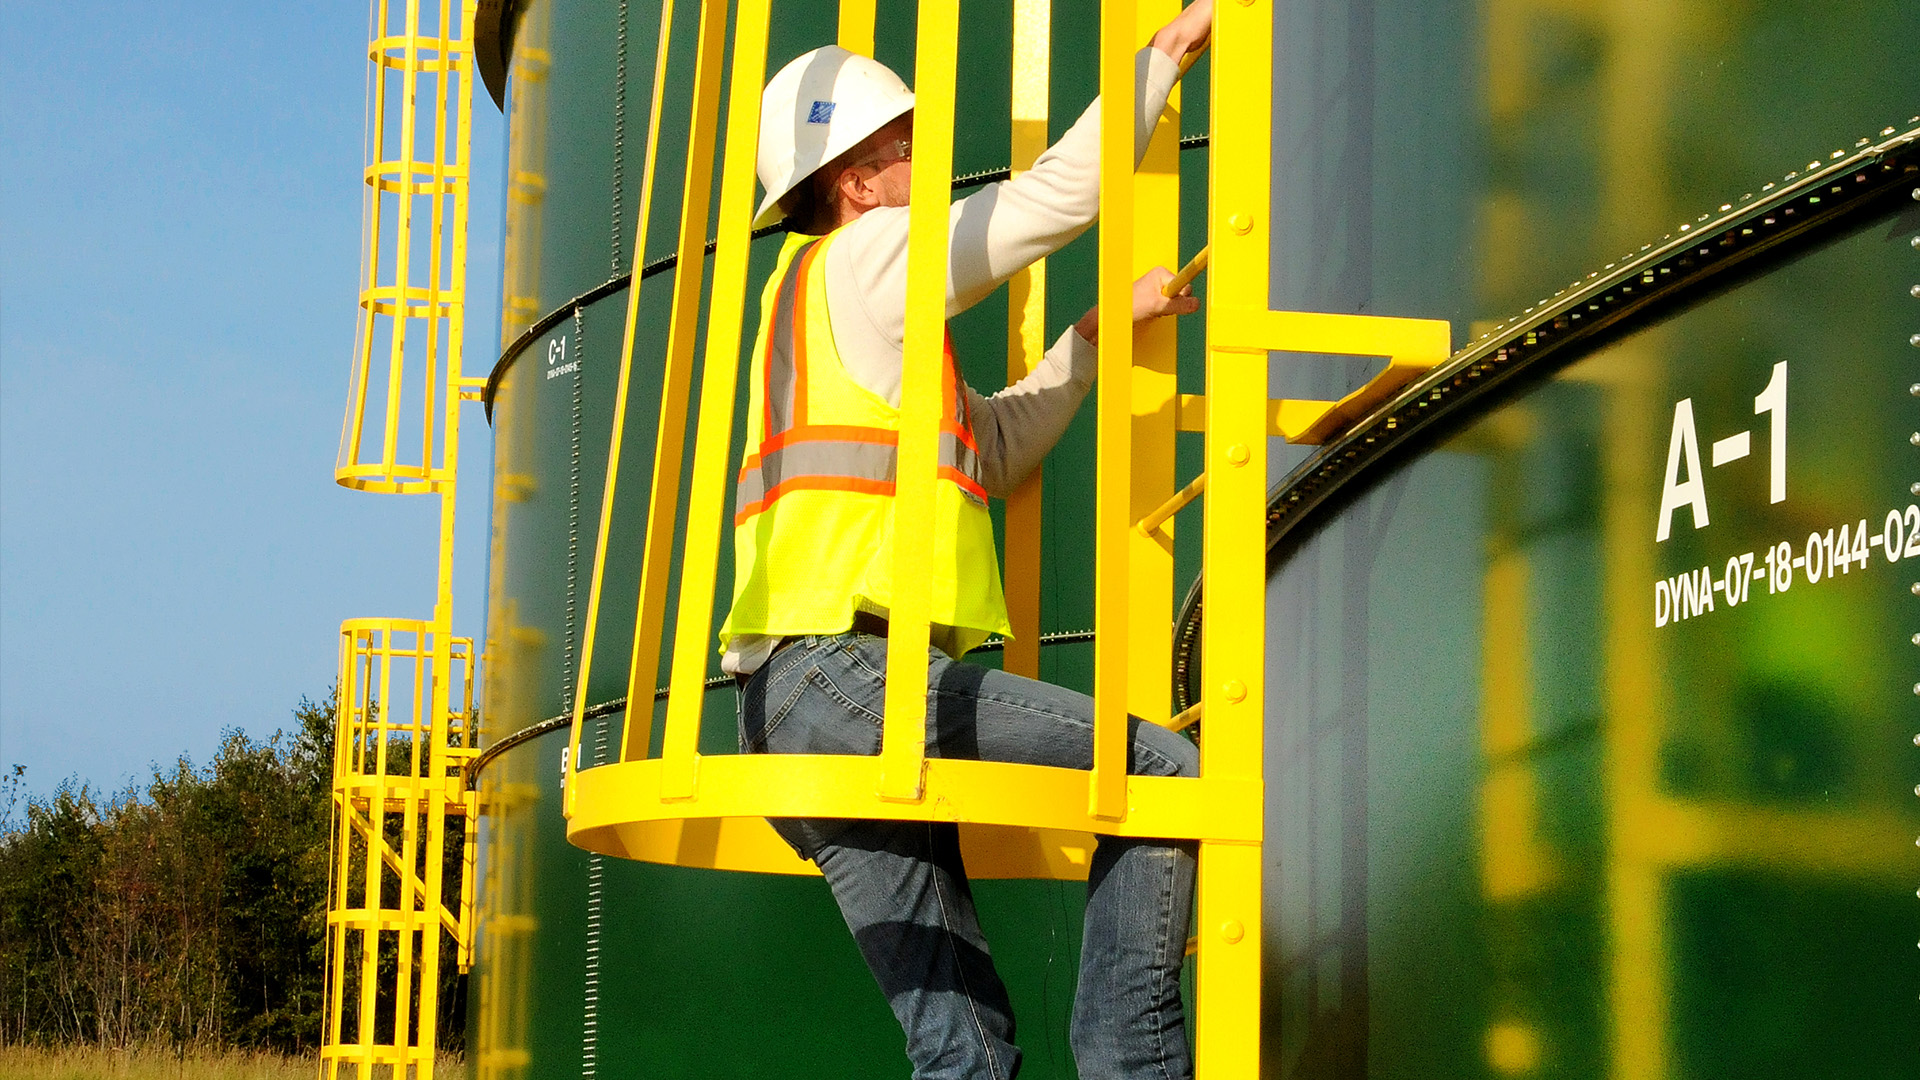 water storage tank worker climbing ladder, wearing bright green vest and white hard hat and safety goggles, bright yellow ladder on green tank